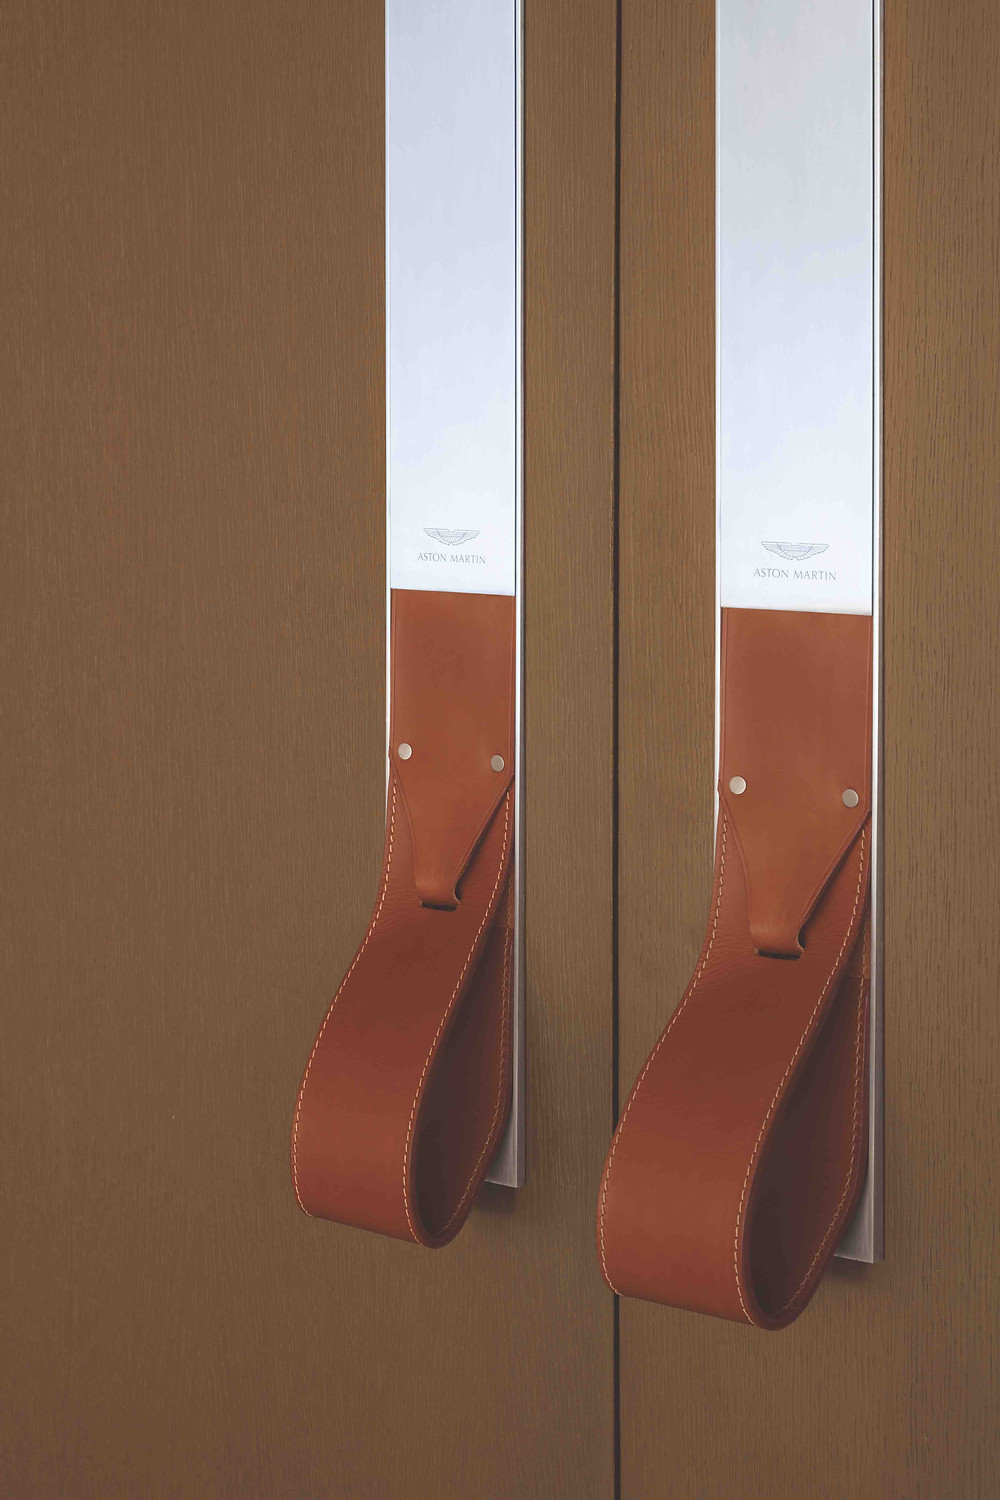 Signature Balmoral Leather Accents on Doorways at Aston Martin Residence